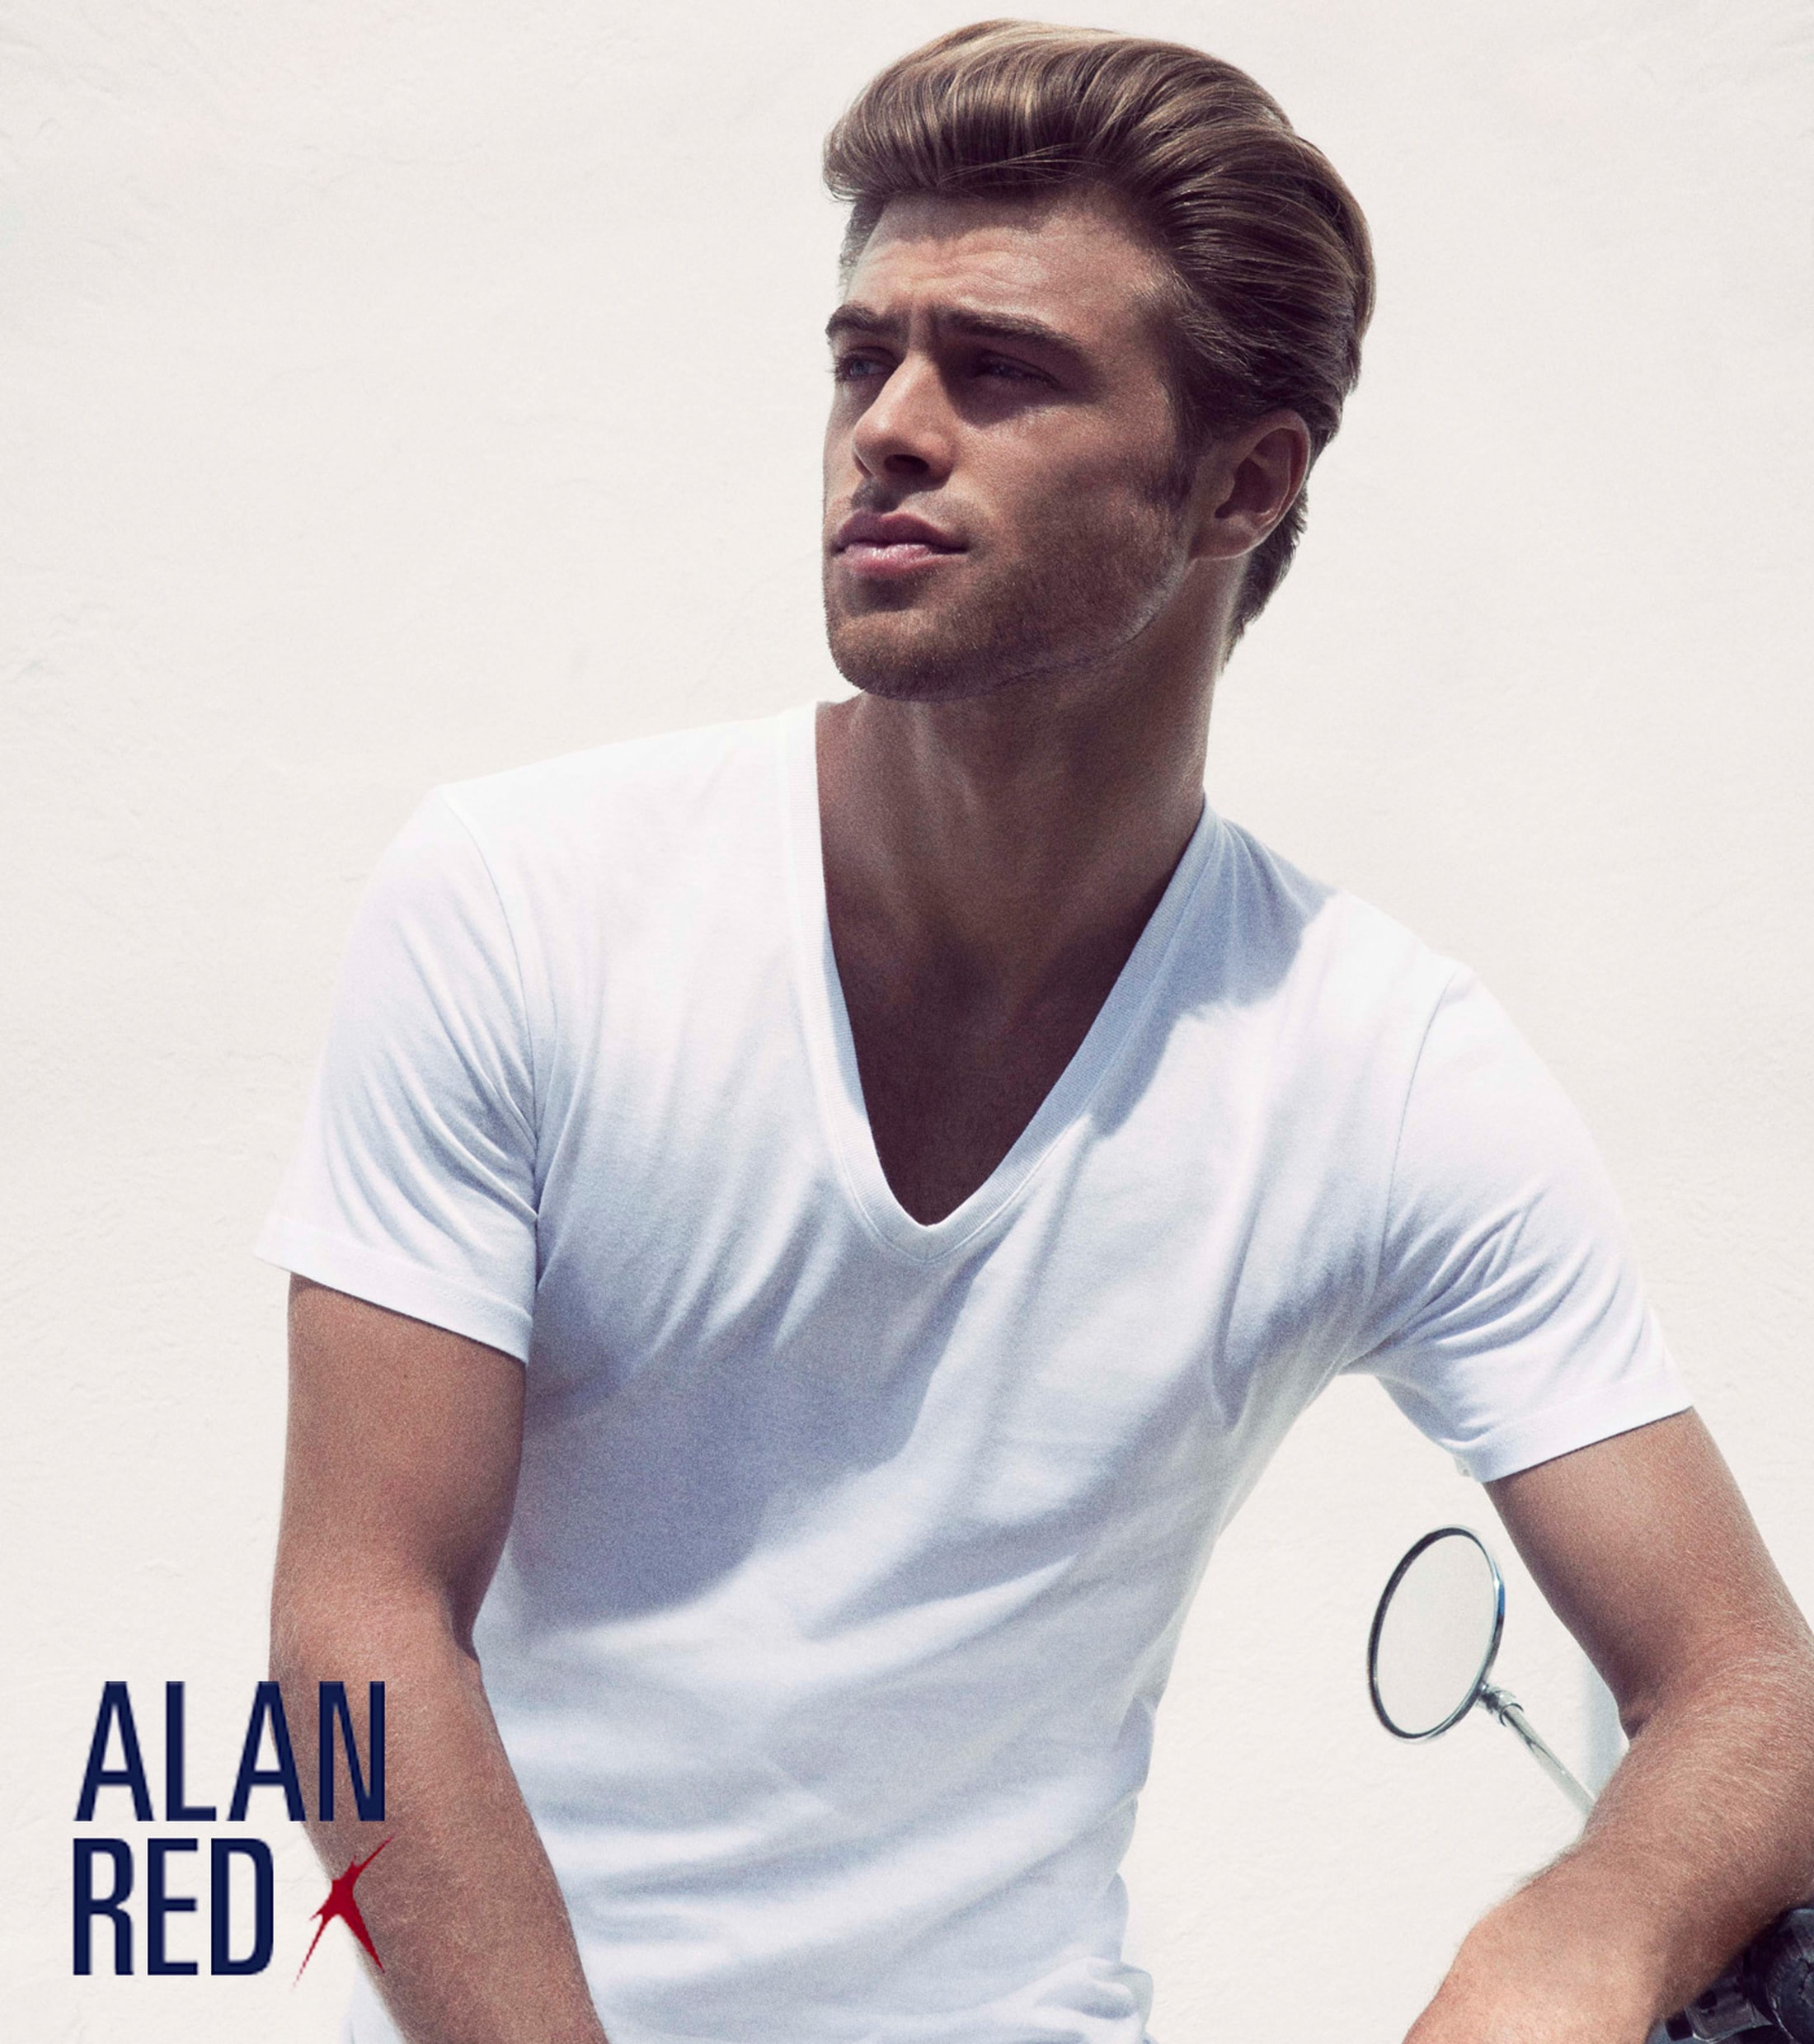 Alan Red Dean V-Neck T-shirt White 2-Pack foto 2